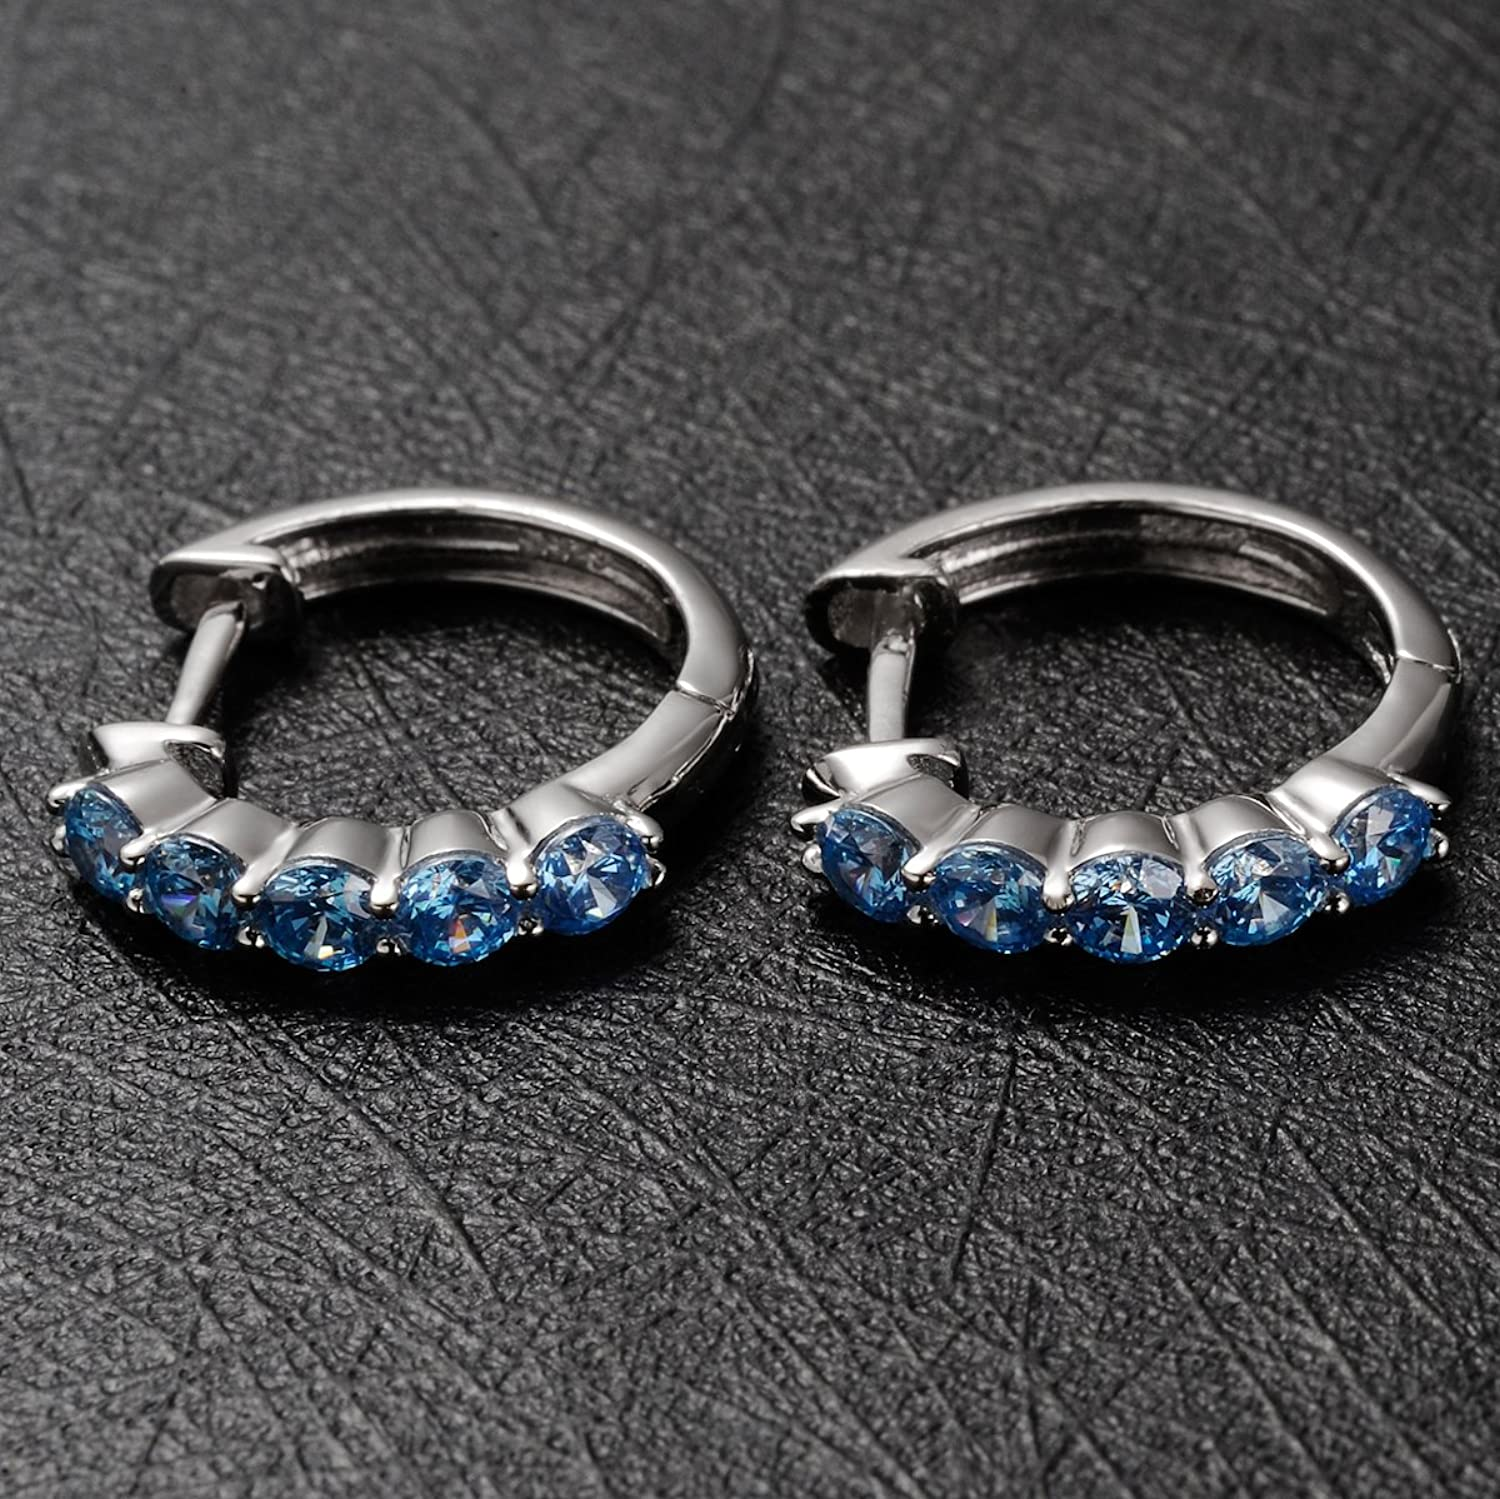 WESTMIAJW Women Genuine 925 Sterling Silver Hoop Earrings with 5A Sky Blue Cubic Zirconia,Ideal Gifts with Fashion Gift Packed